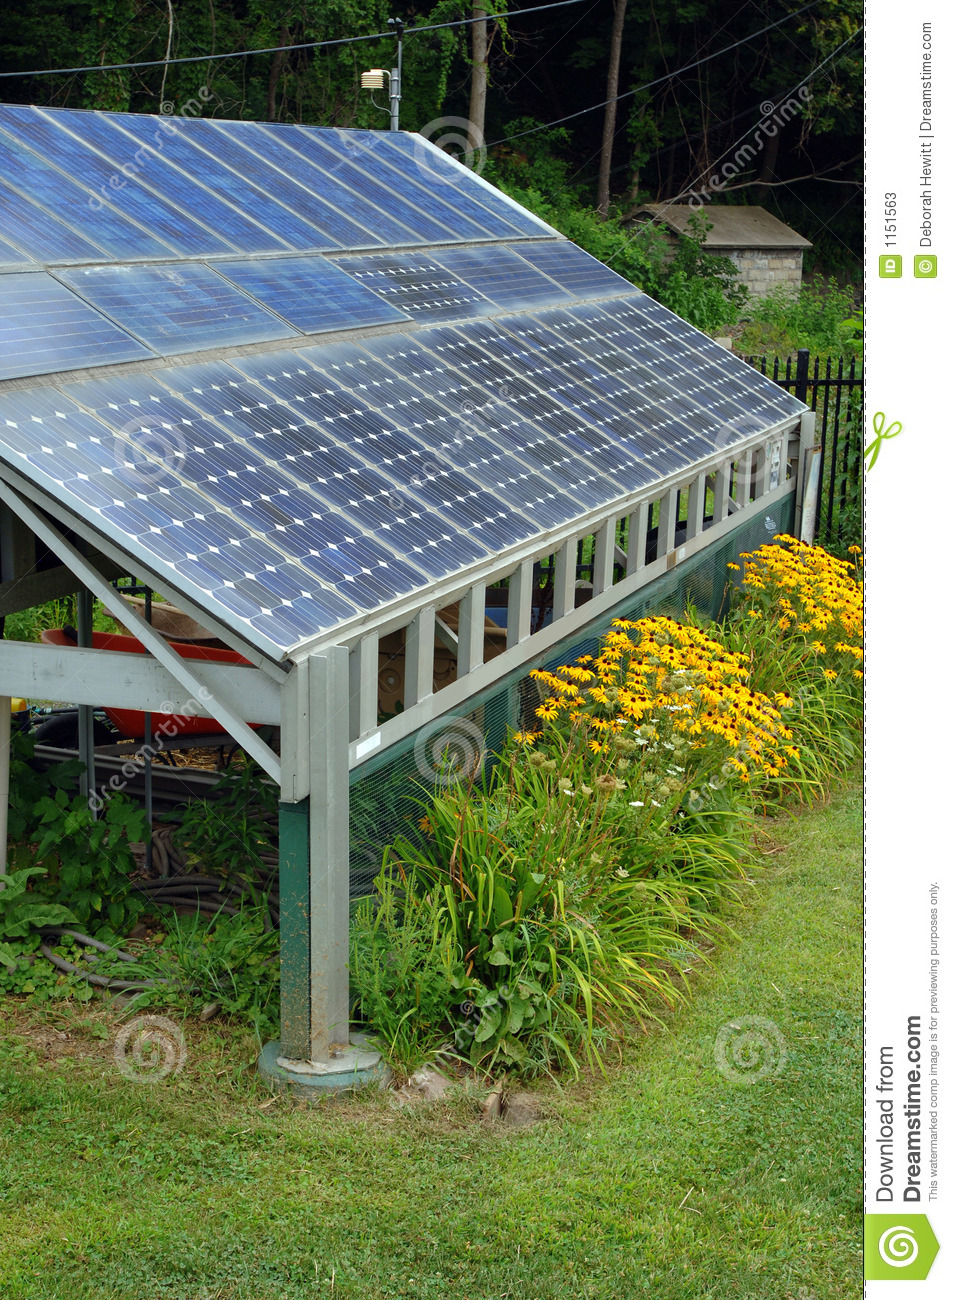 Solar Power Shed Stock Image Image Of Solar Environment